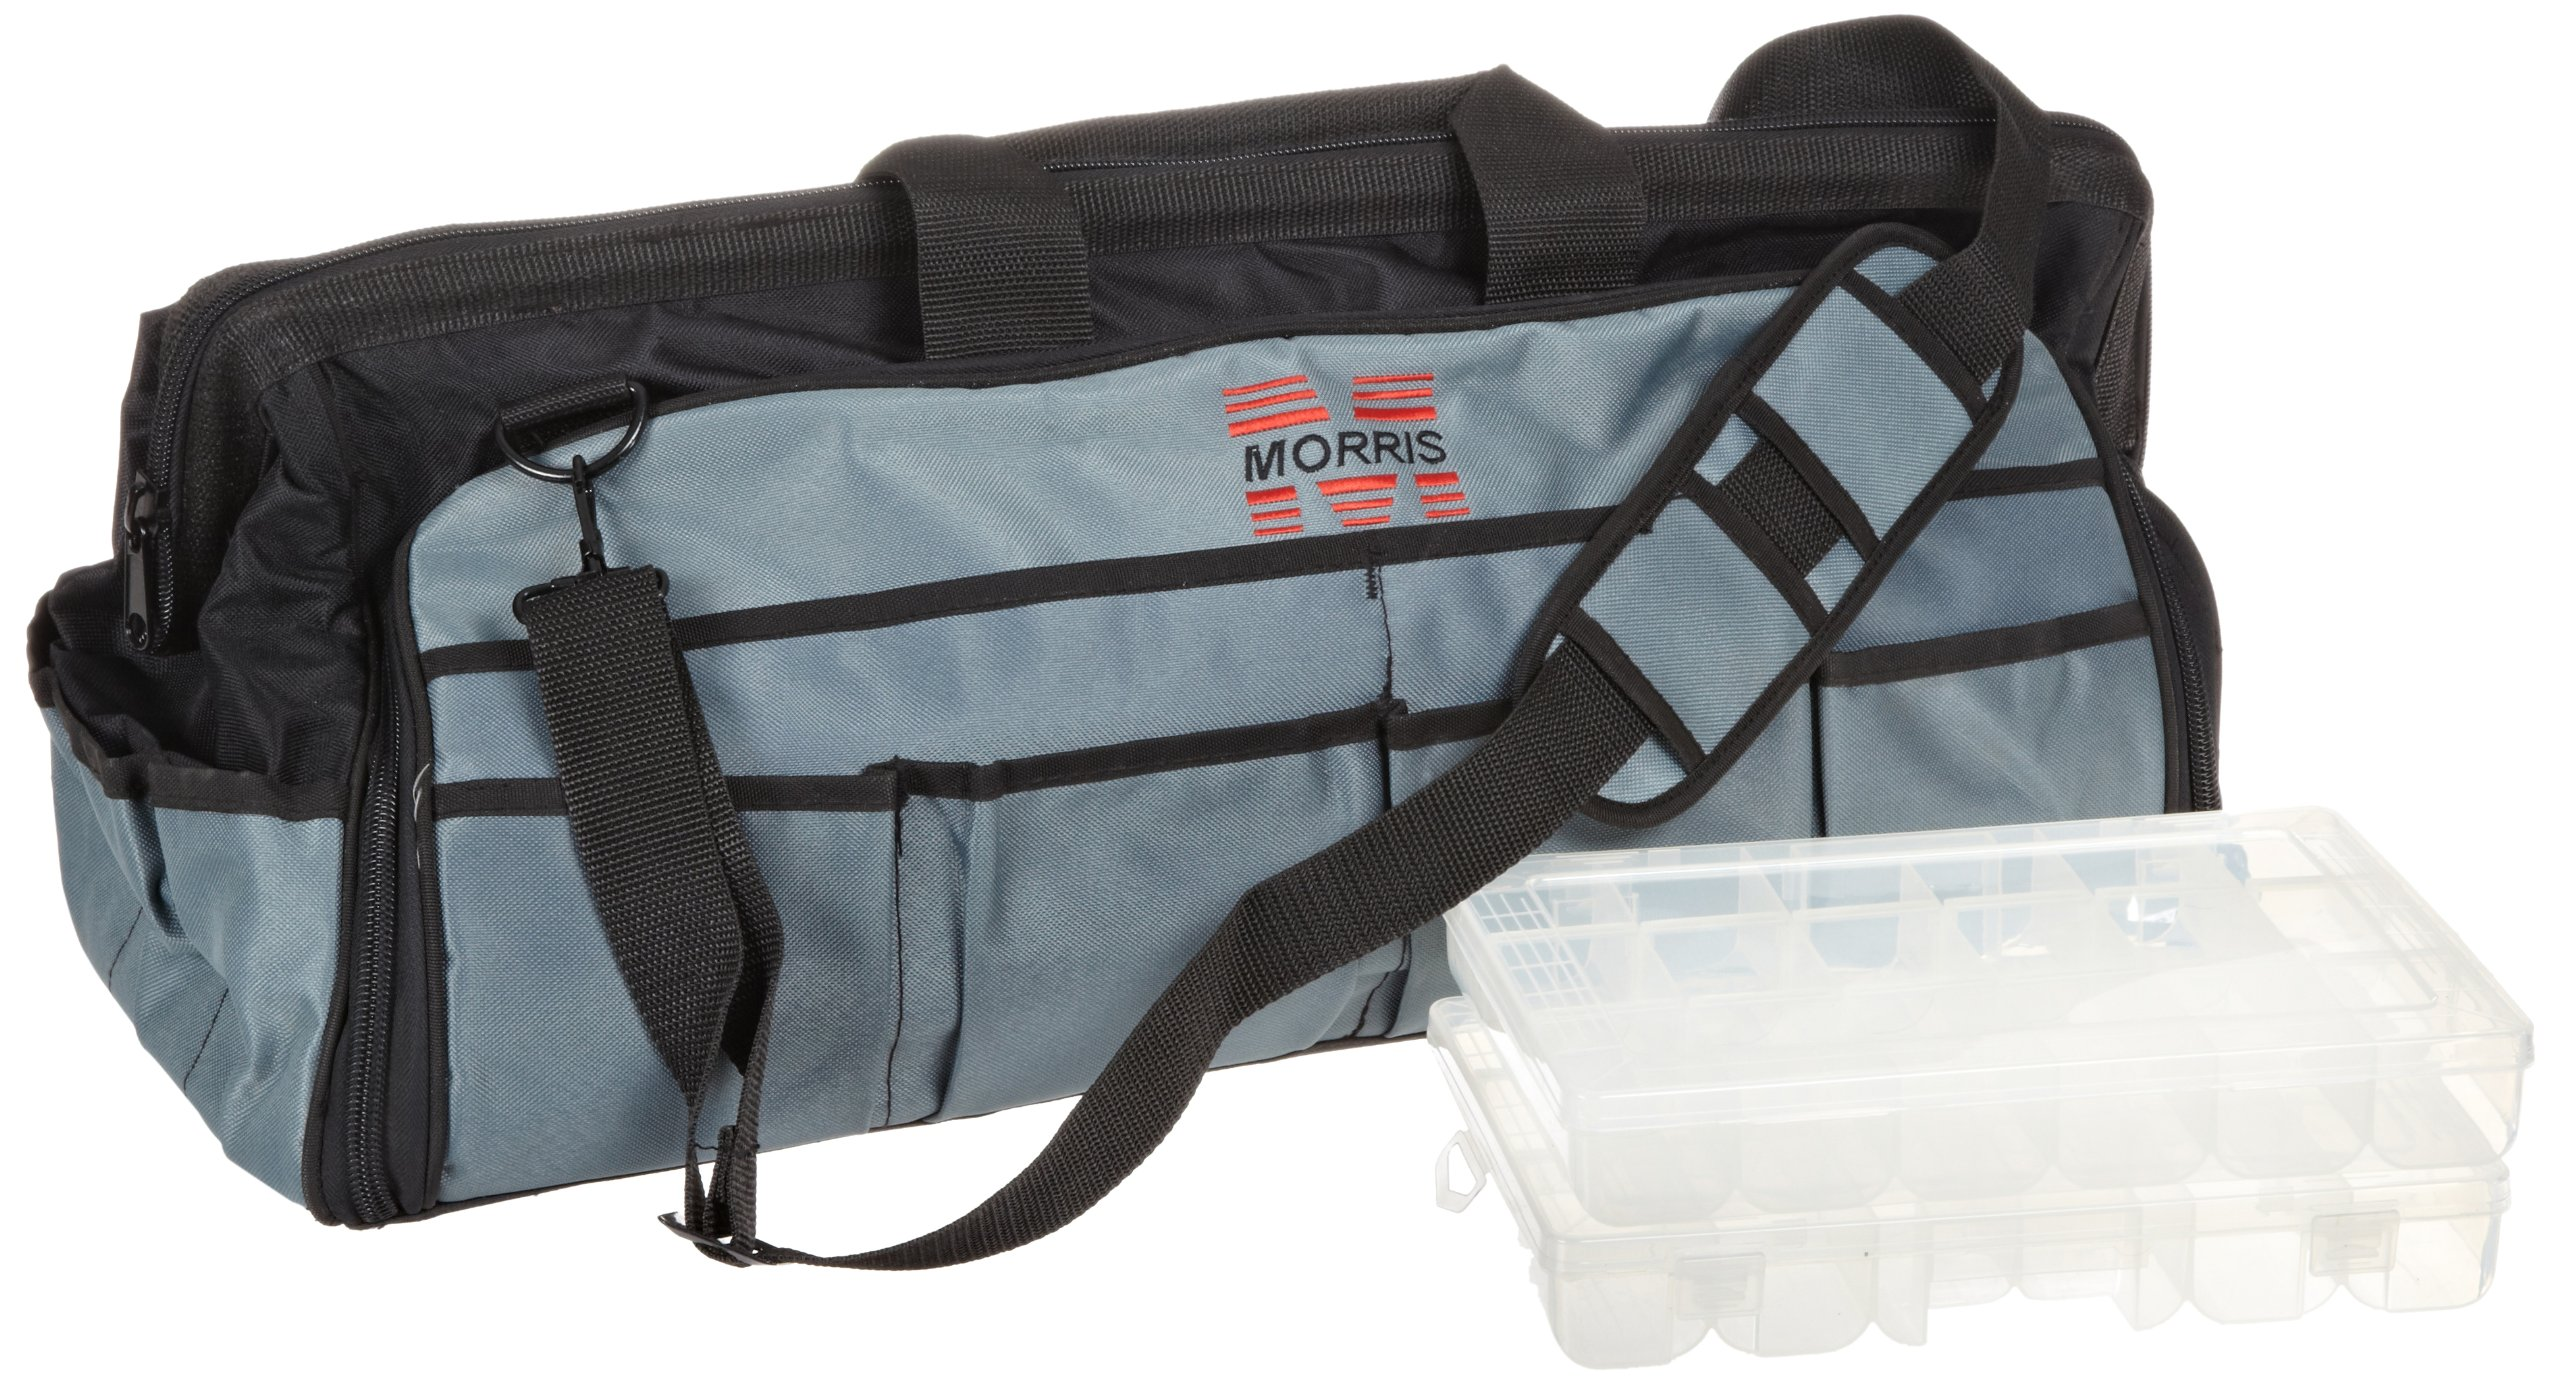 Morris Products 53516 Large Easy Search Tool Bag with Plastic Tray, 24'' Length, 8.5'' Width, 13'' Height, 59 Total - 20 inside, 39 outside Pockets